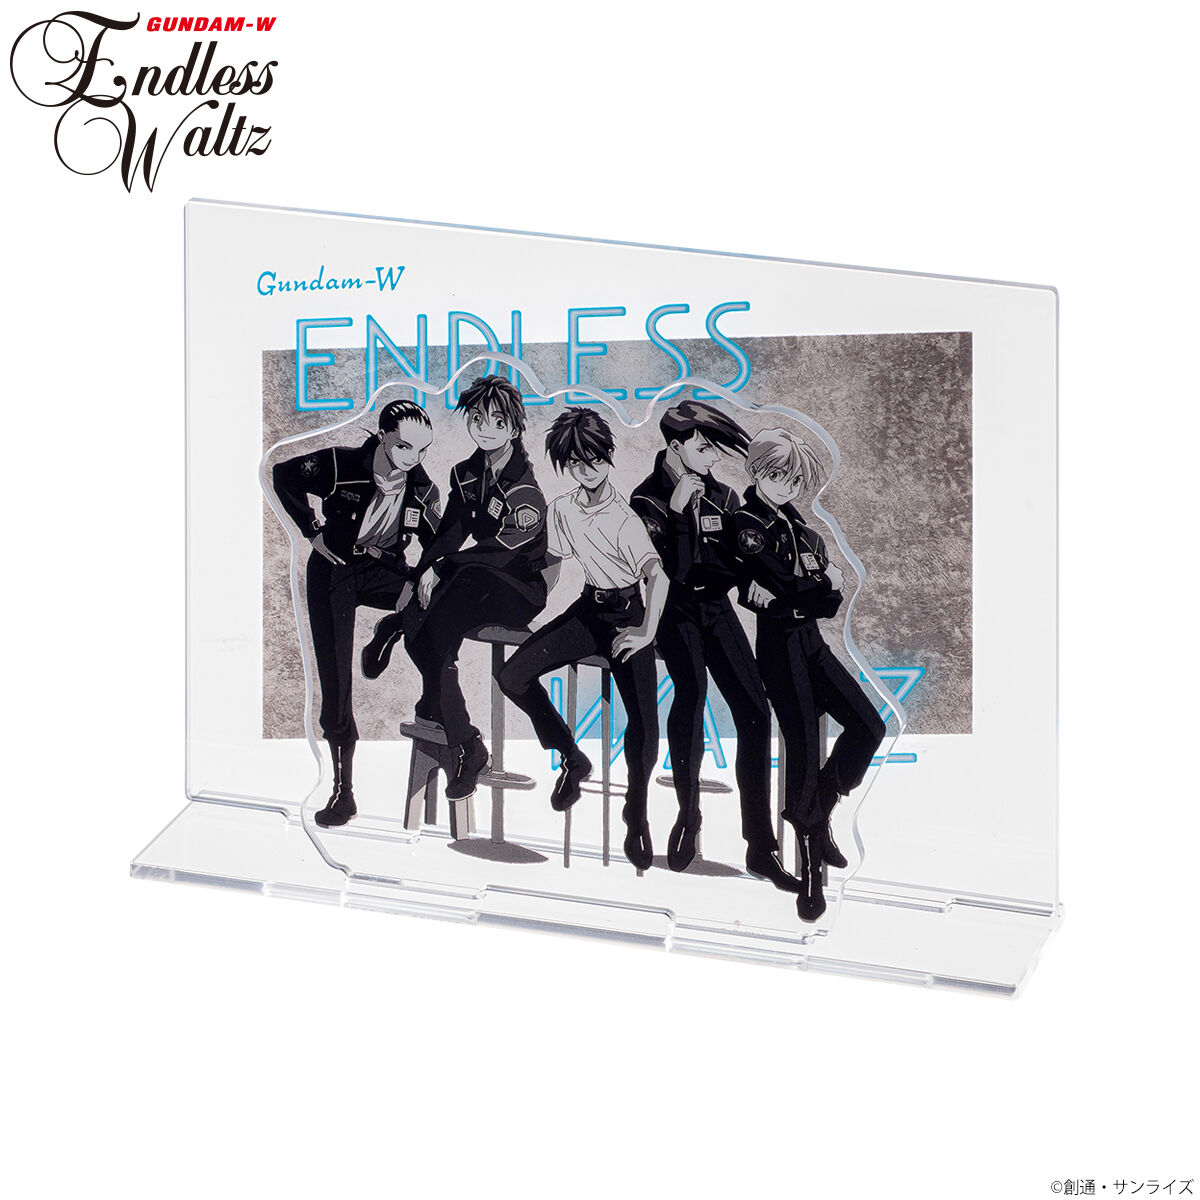 Mobile Suit Gundam Wing: Endless Waltz Acrylic Standee